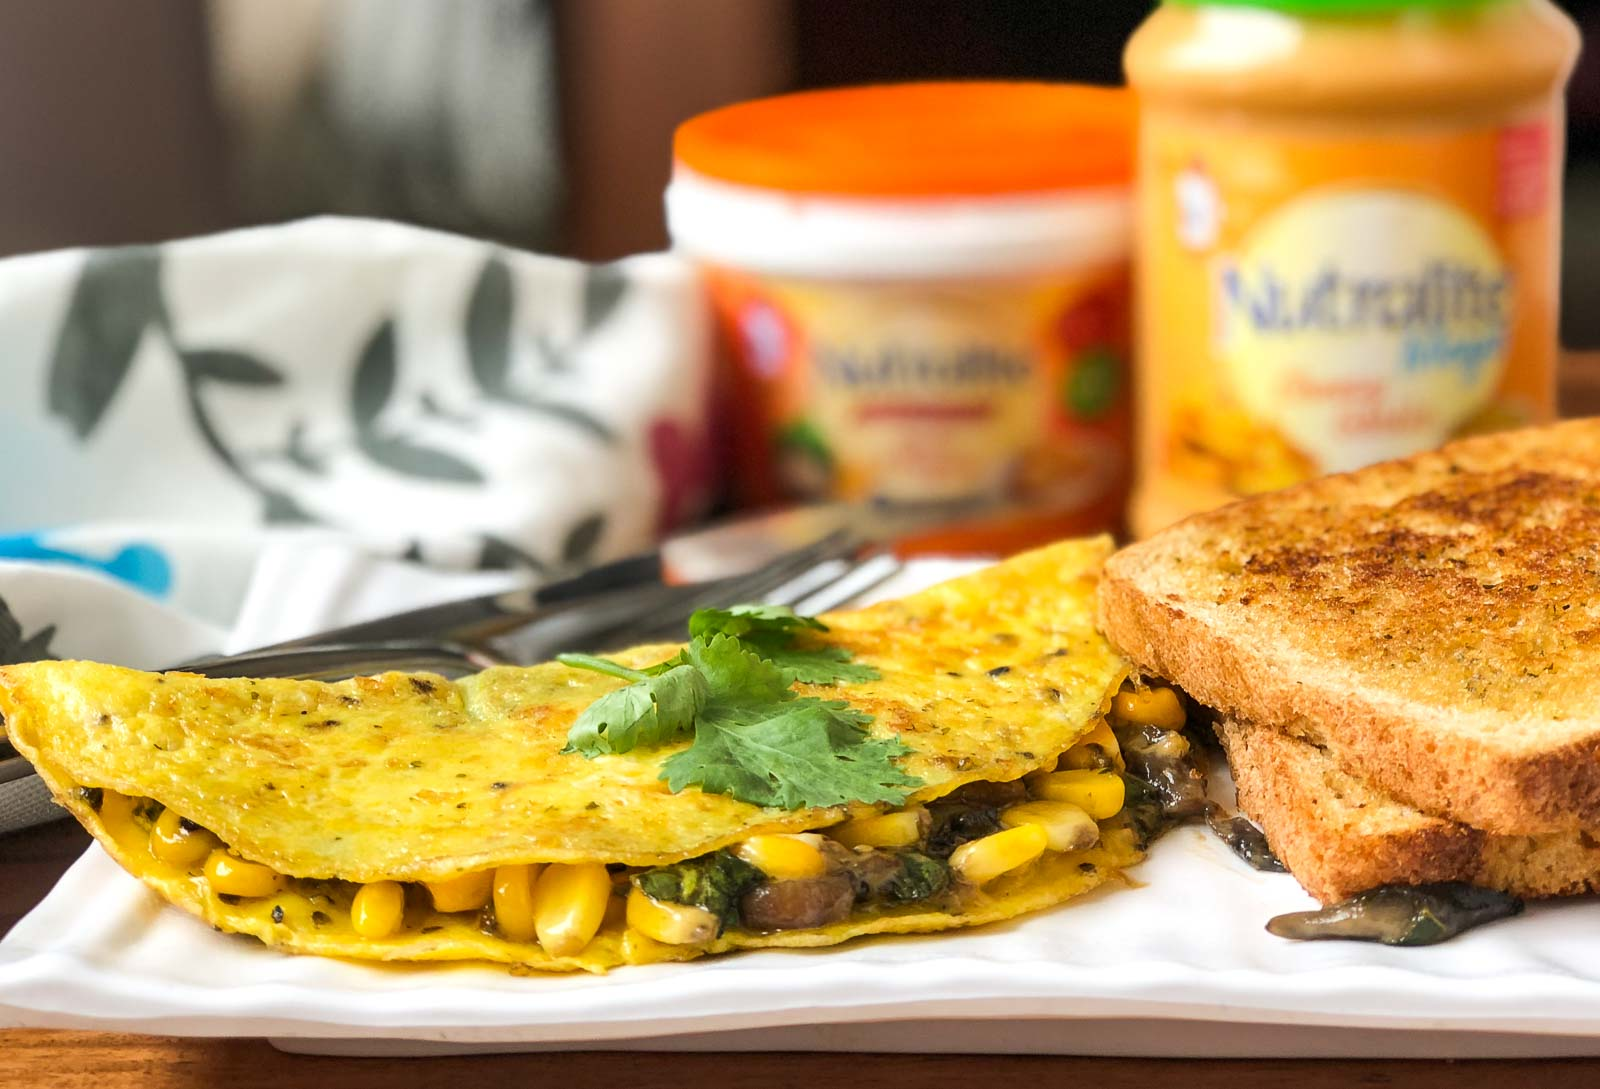 Stuffed Omelette Recipe With Cheesy Garlic Mushroom & Corn